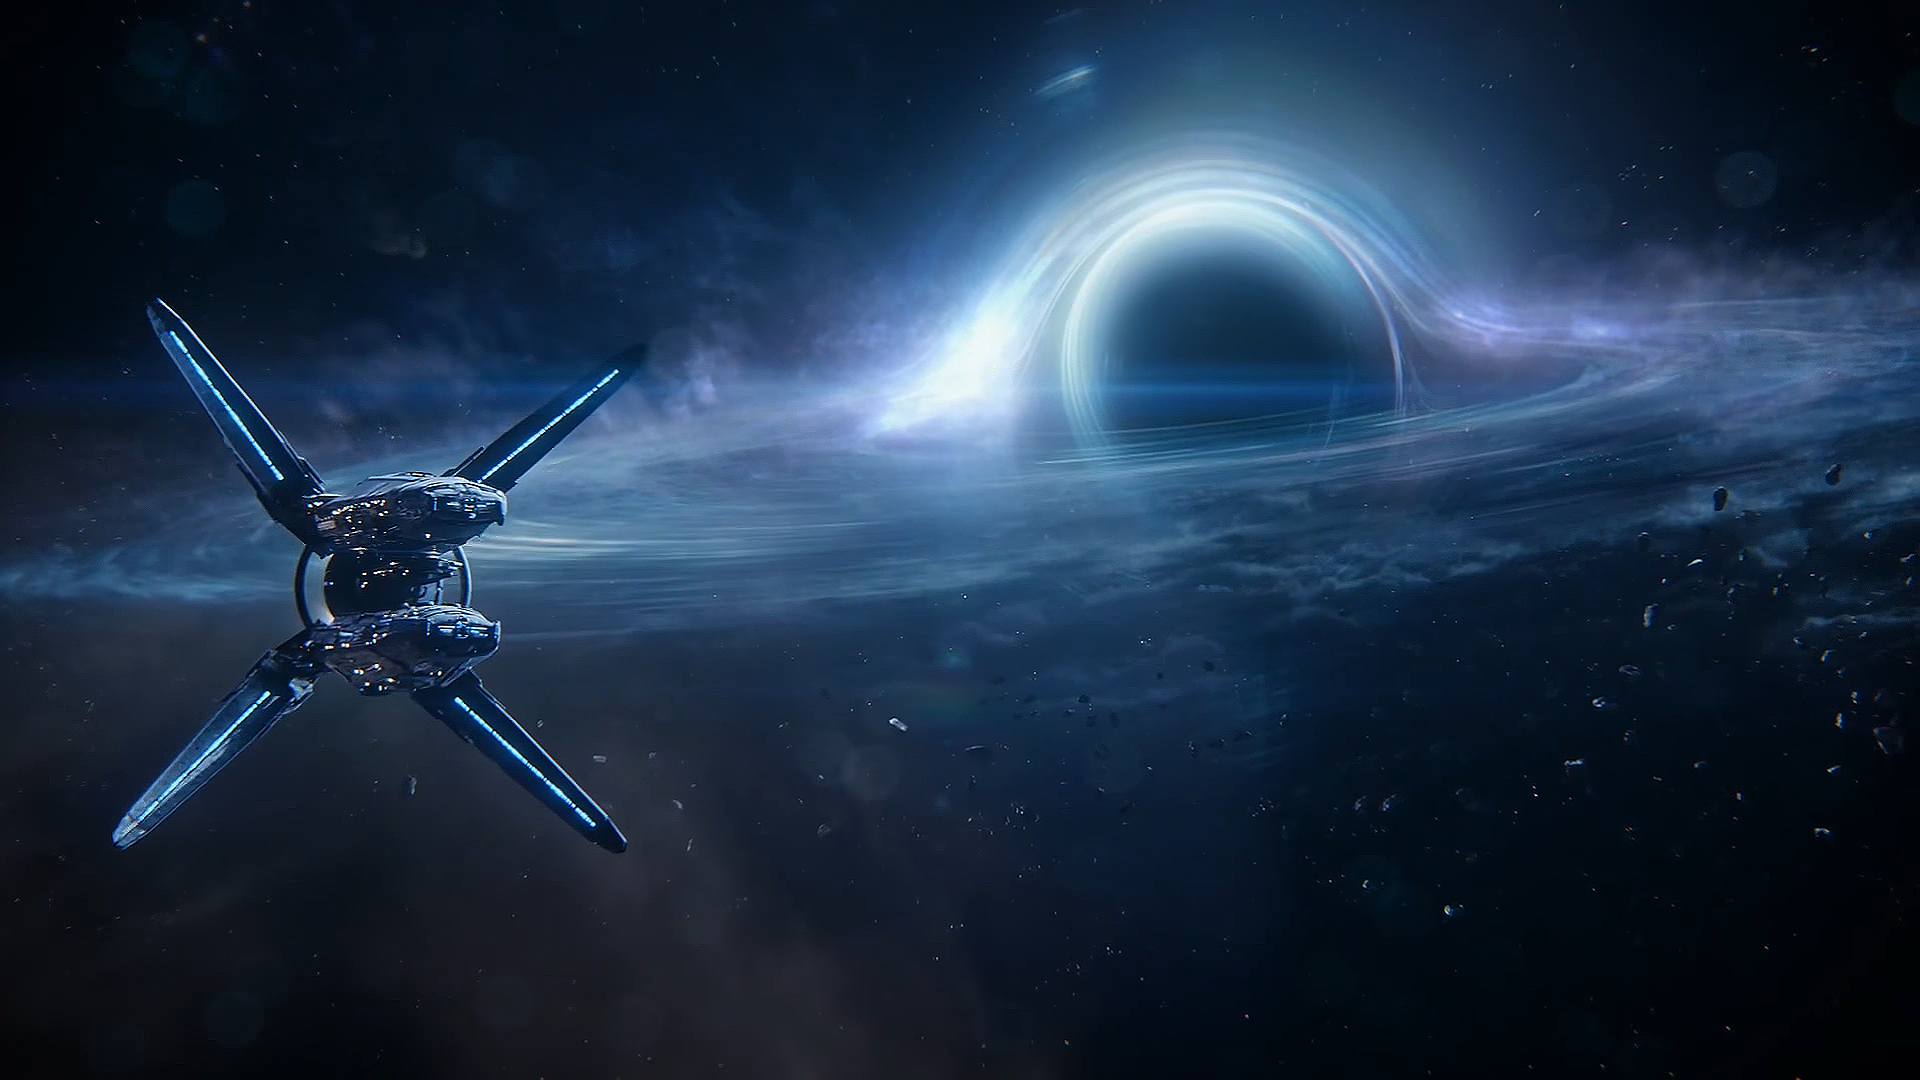 Download Mass Effect Andromeda Wallpaper Hd Backgrounds